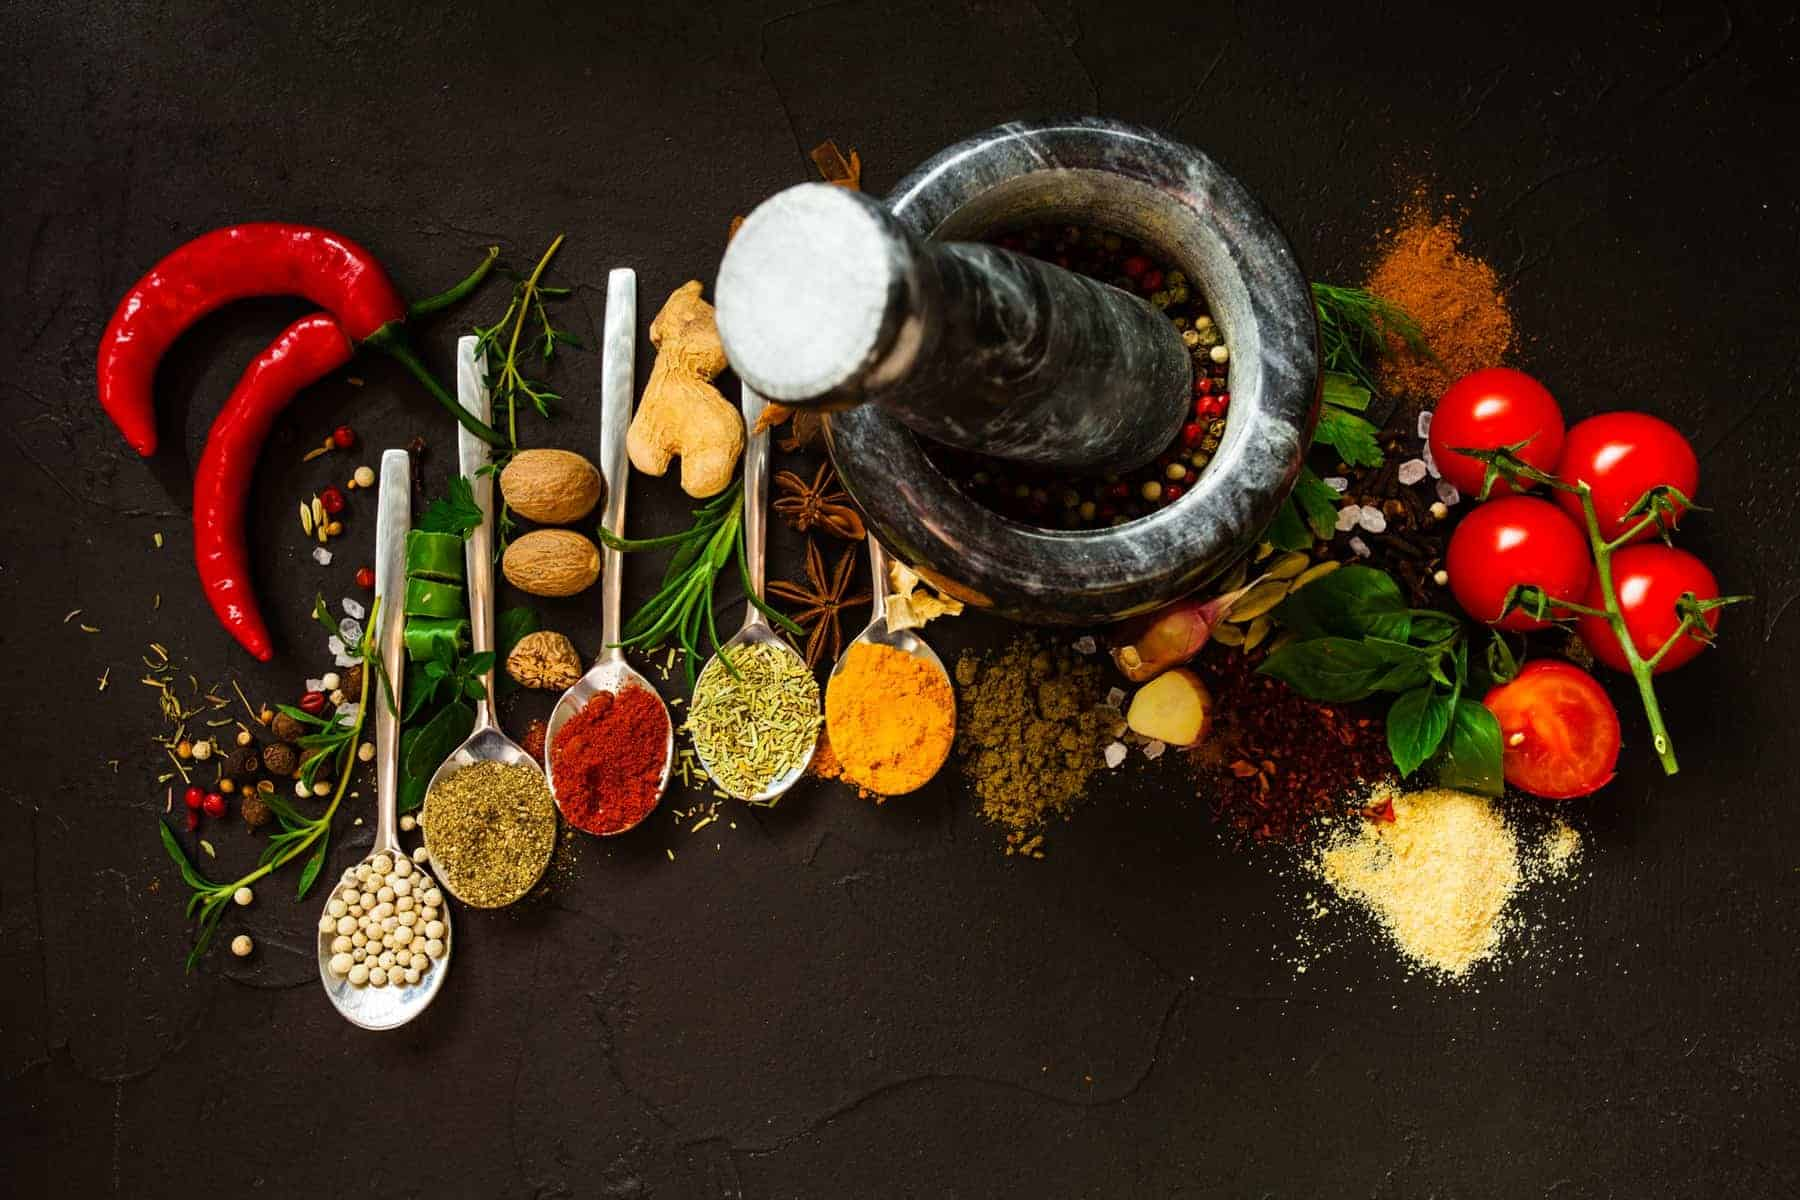 Pepper in a mortar and dry spices on a black background